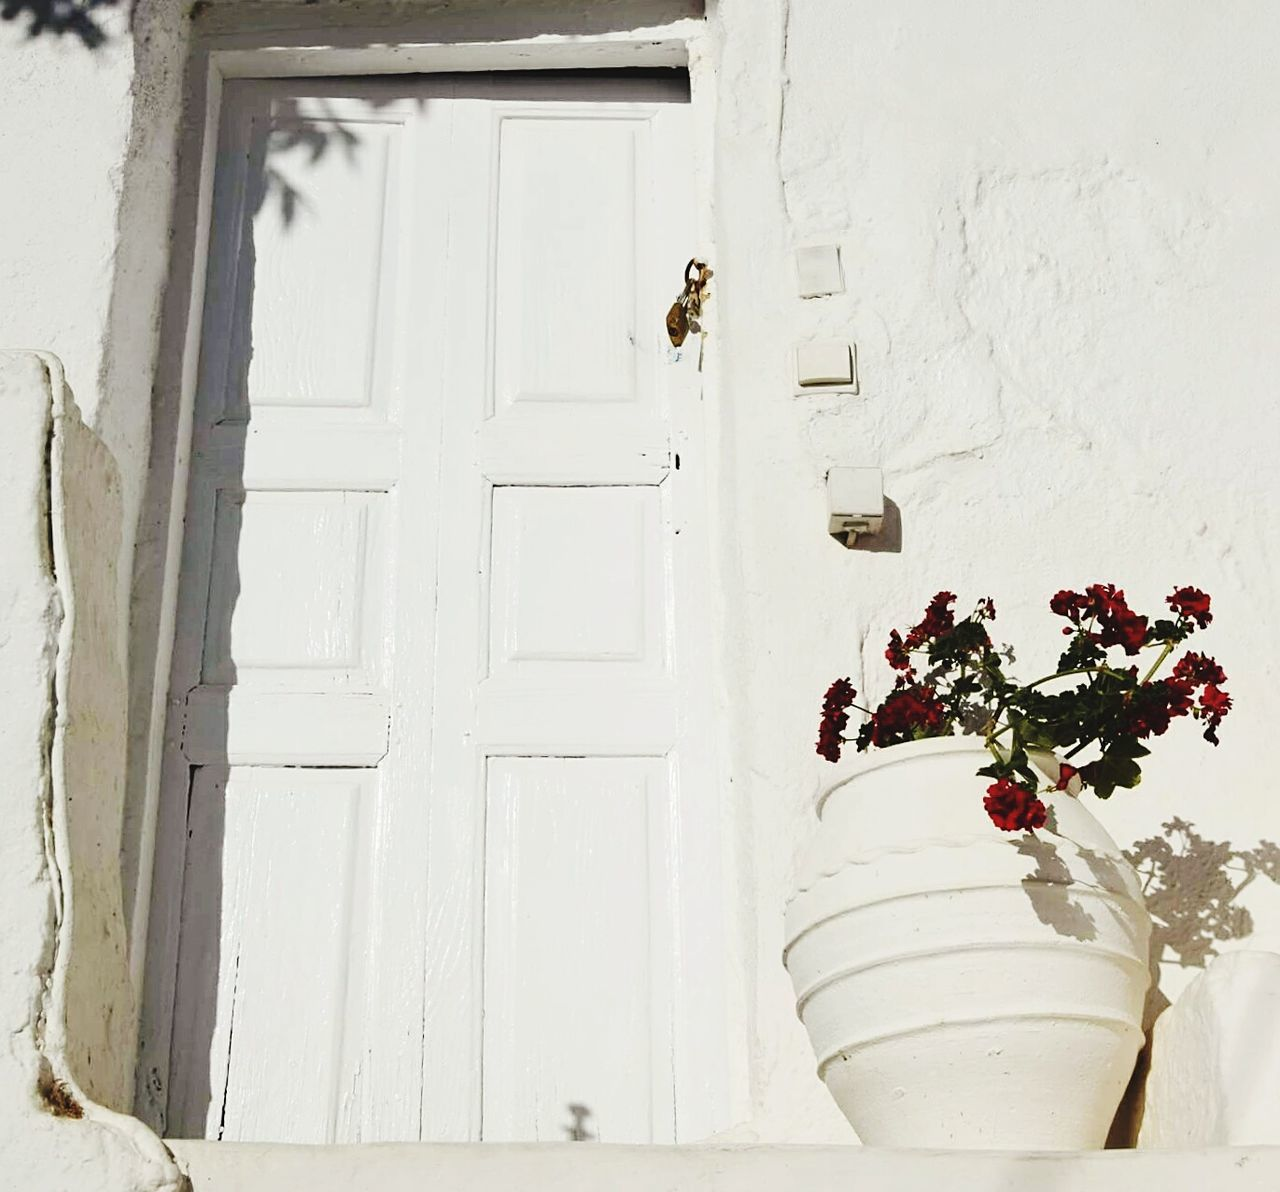 Santorini.Greece Door No People Day Outdoors Close-up Architecture Building Exterior Travel Tourism Photo Of The Day Photography Greece EyeEmBestPics Oia Hellas Travel Destinations 3XSPUnity EyeEm Gallery Eyeemphotography Picsoftheday Summer Santorini Island Highcontrast HighContrastPhotography EyeEmNewHere